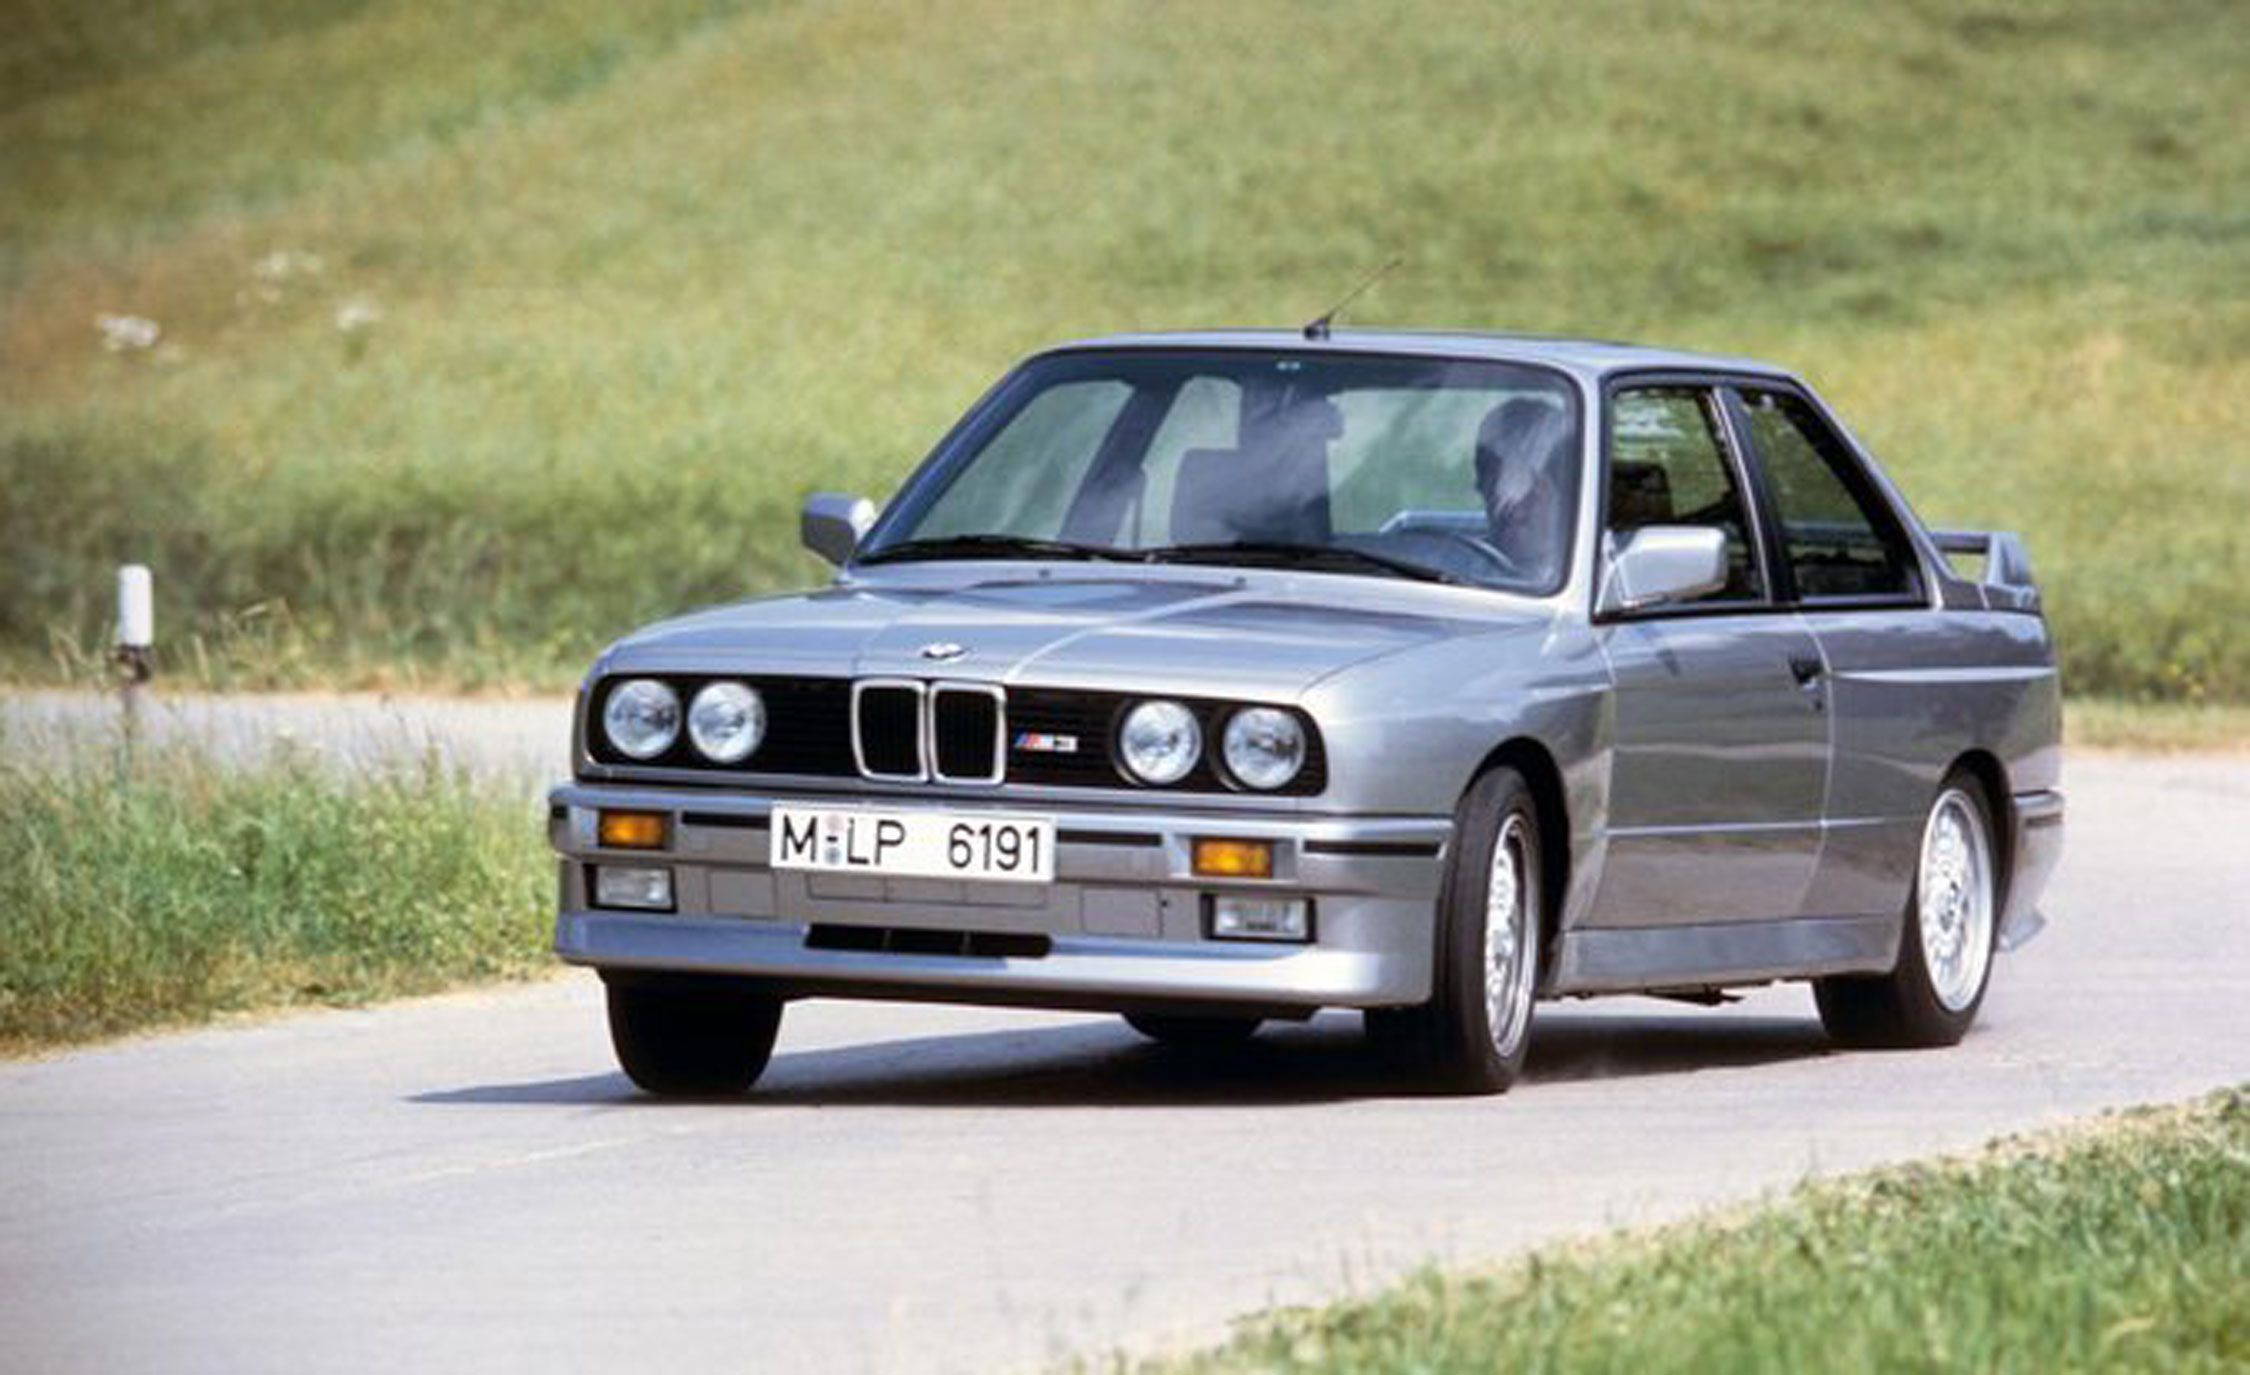 30 Coolest Cars Of The 1980s That Are Awesome To The Max